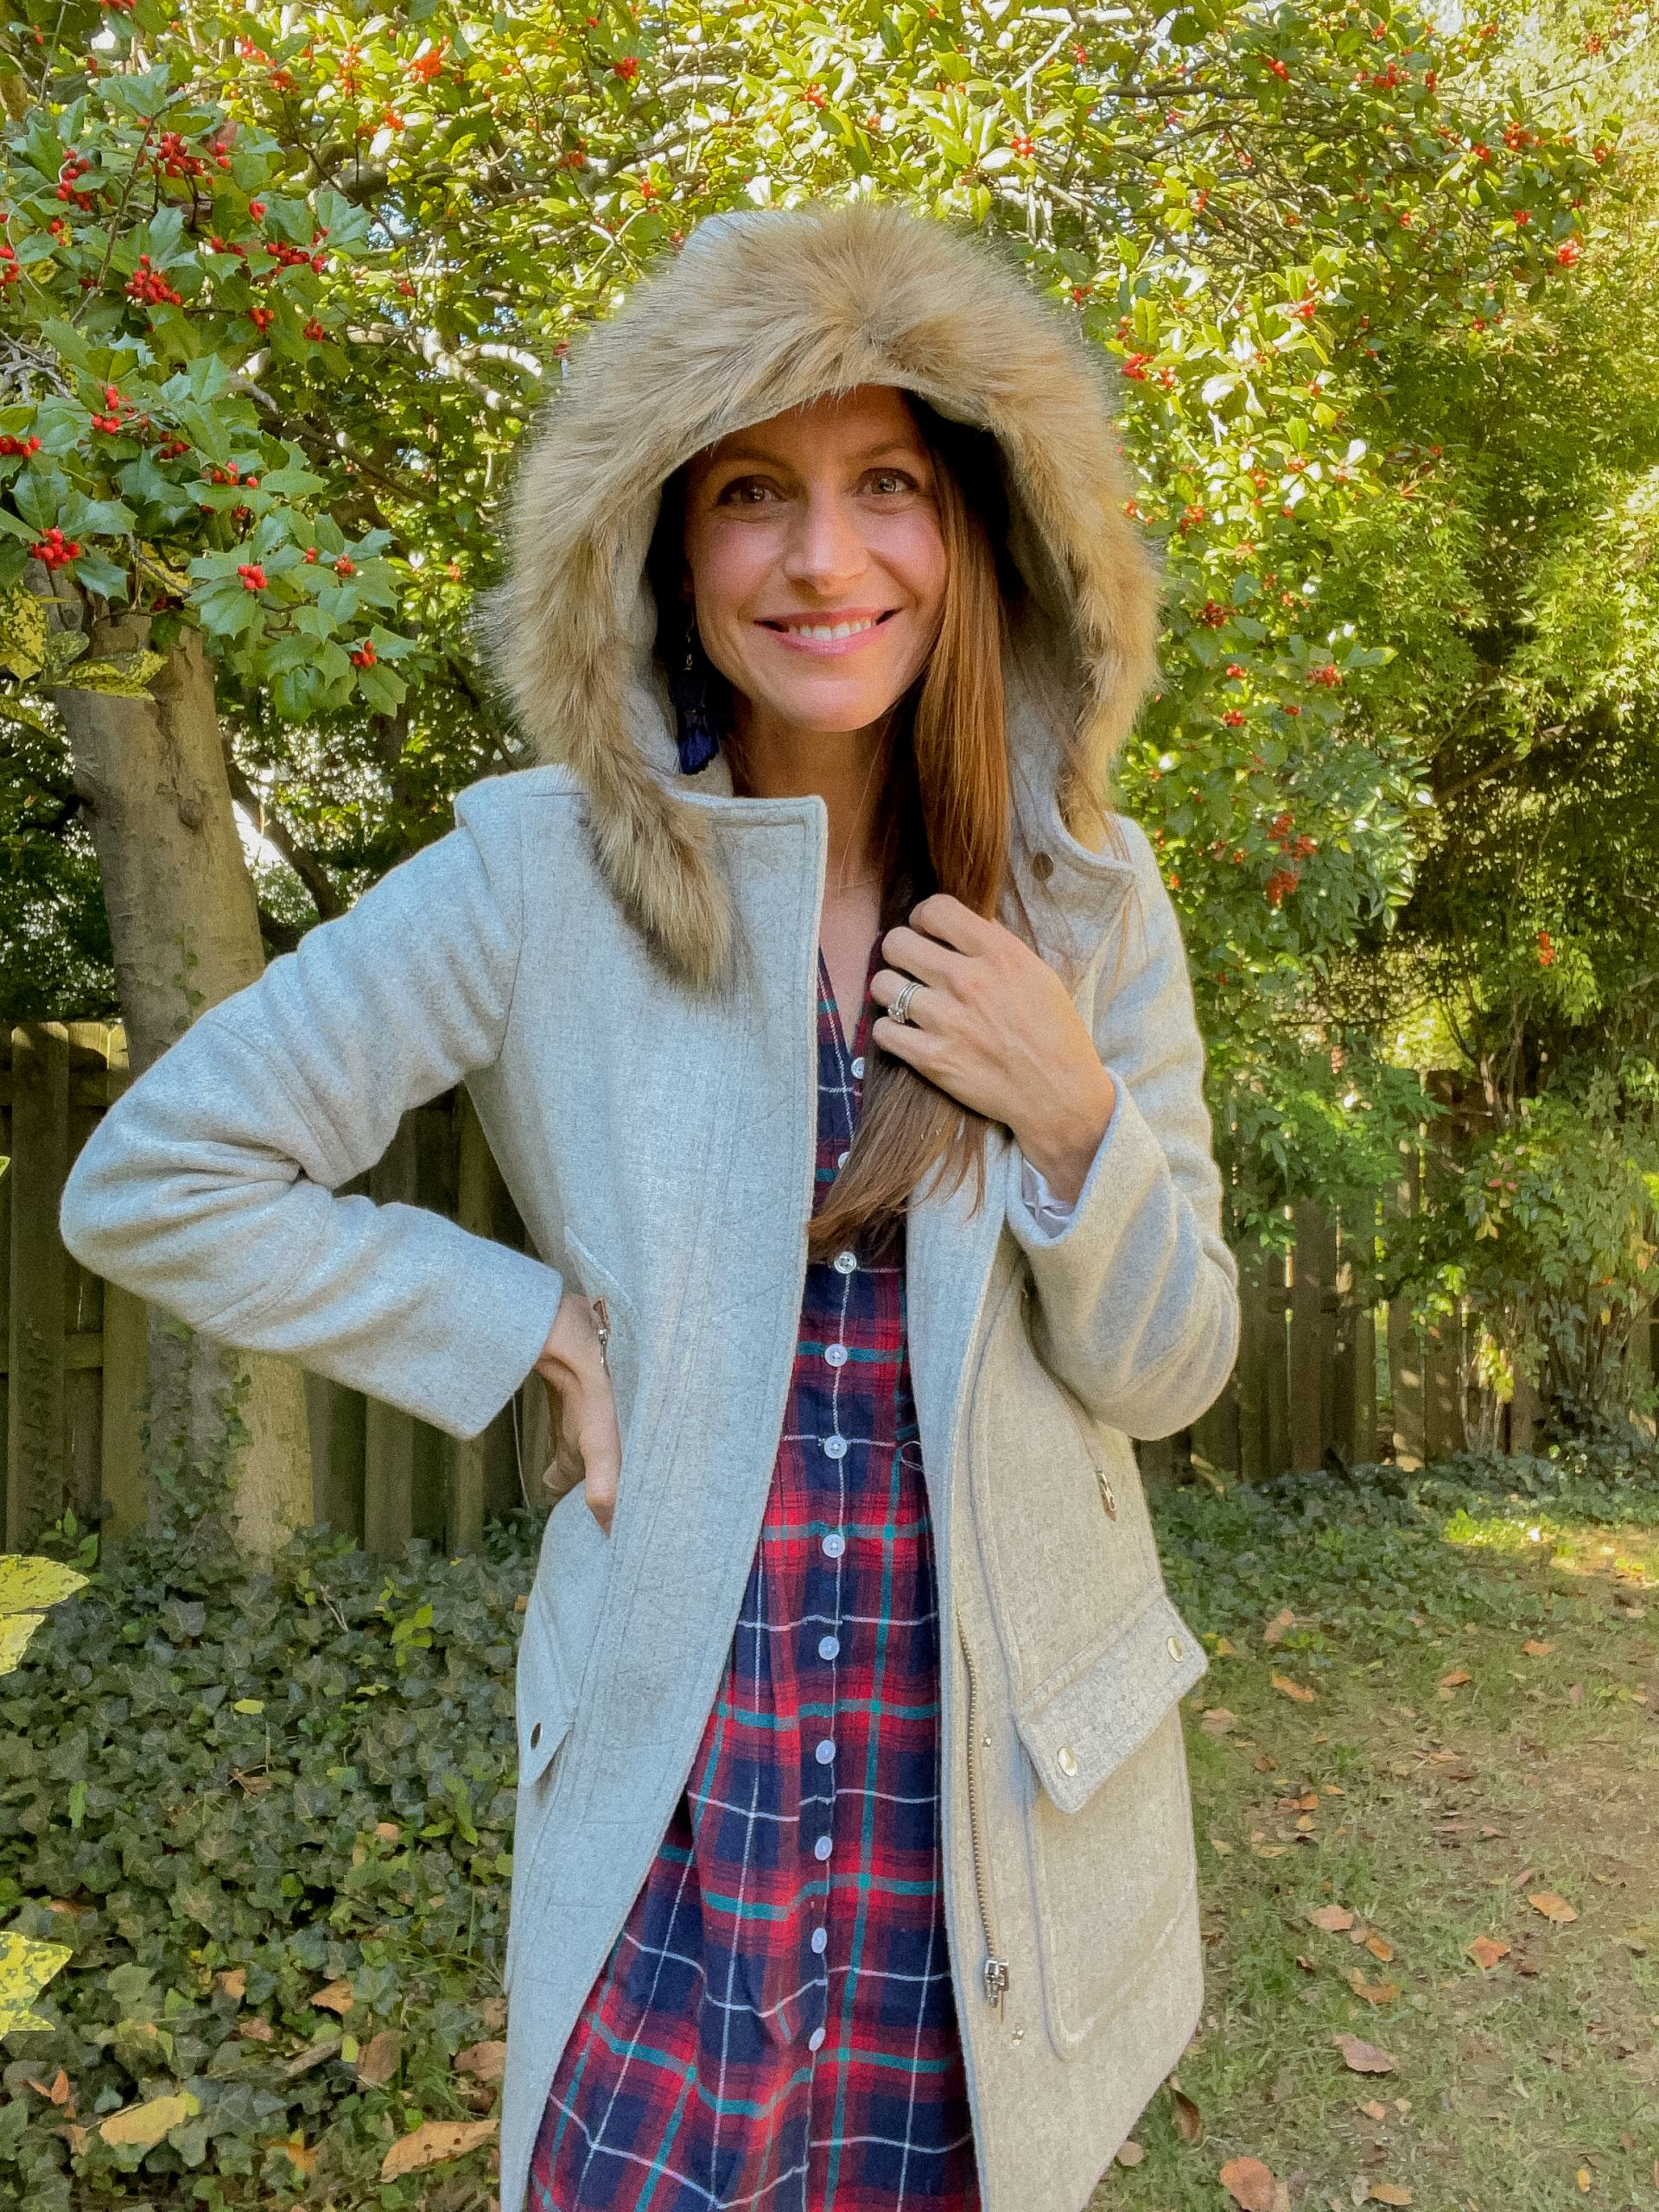 plaid dress with winter coat